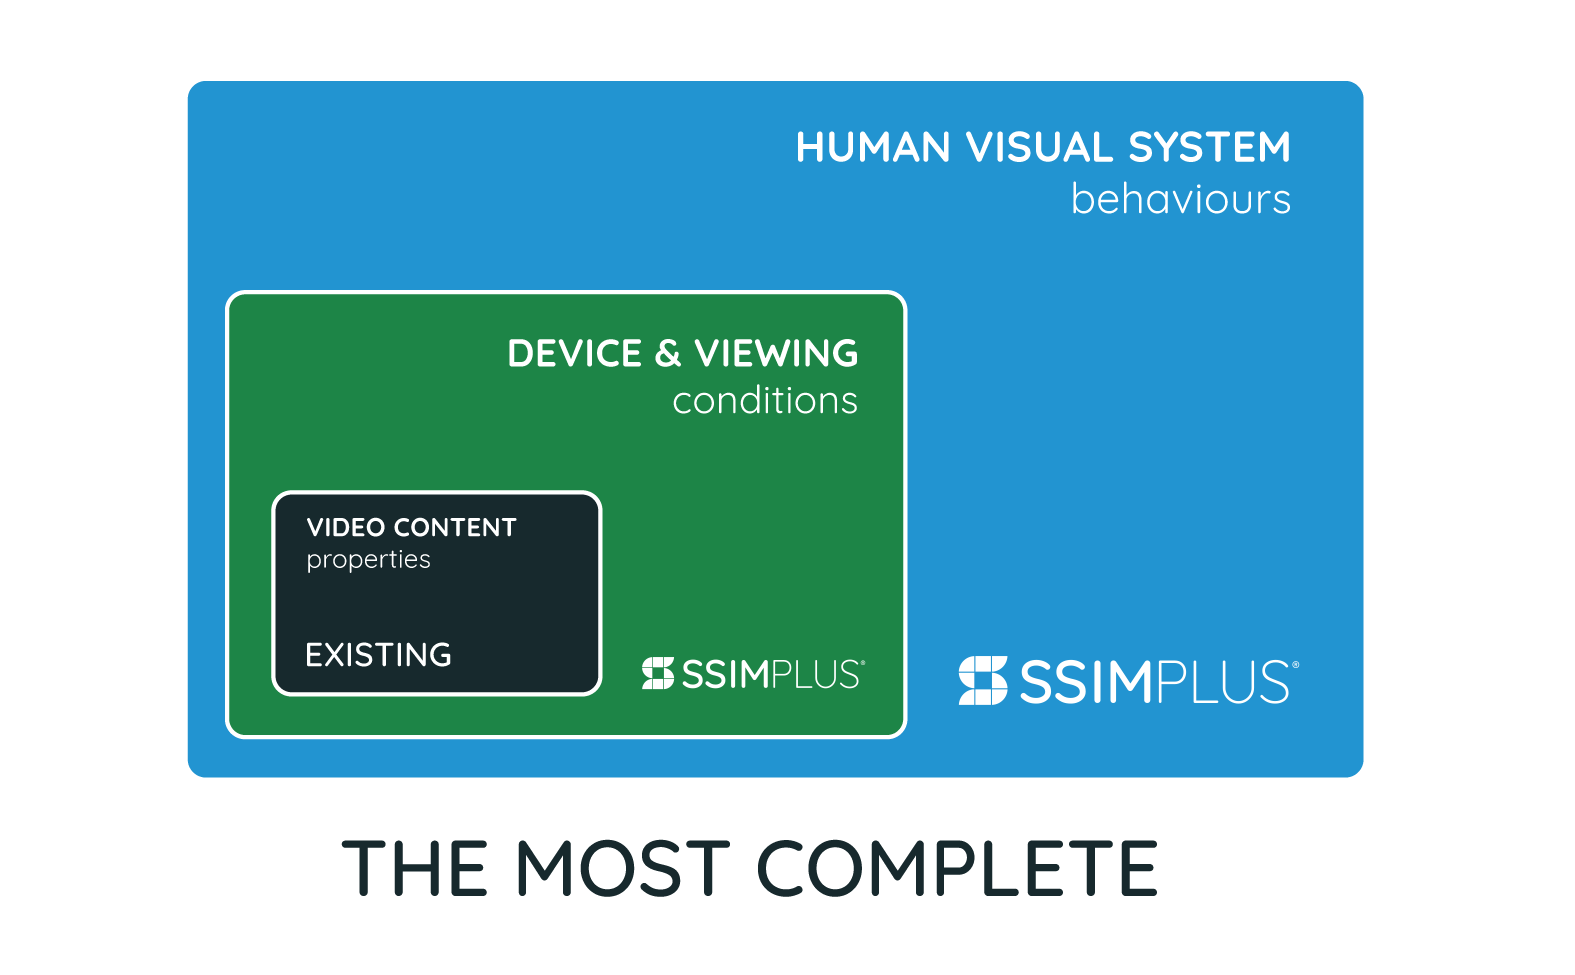 the most complete infographic Comparing existing solutions to SSIMPLUS which measures Device and viewing conditions and human visual system behaviours